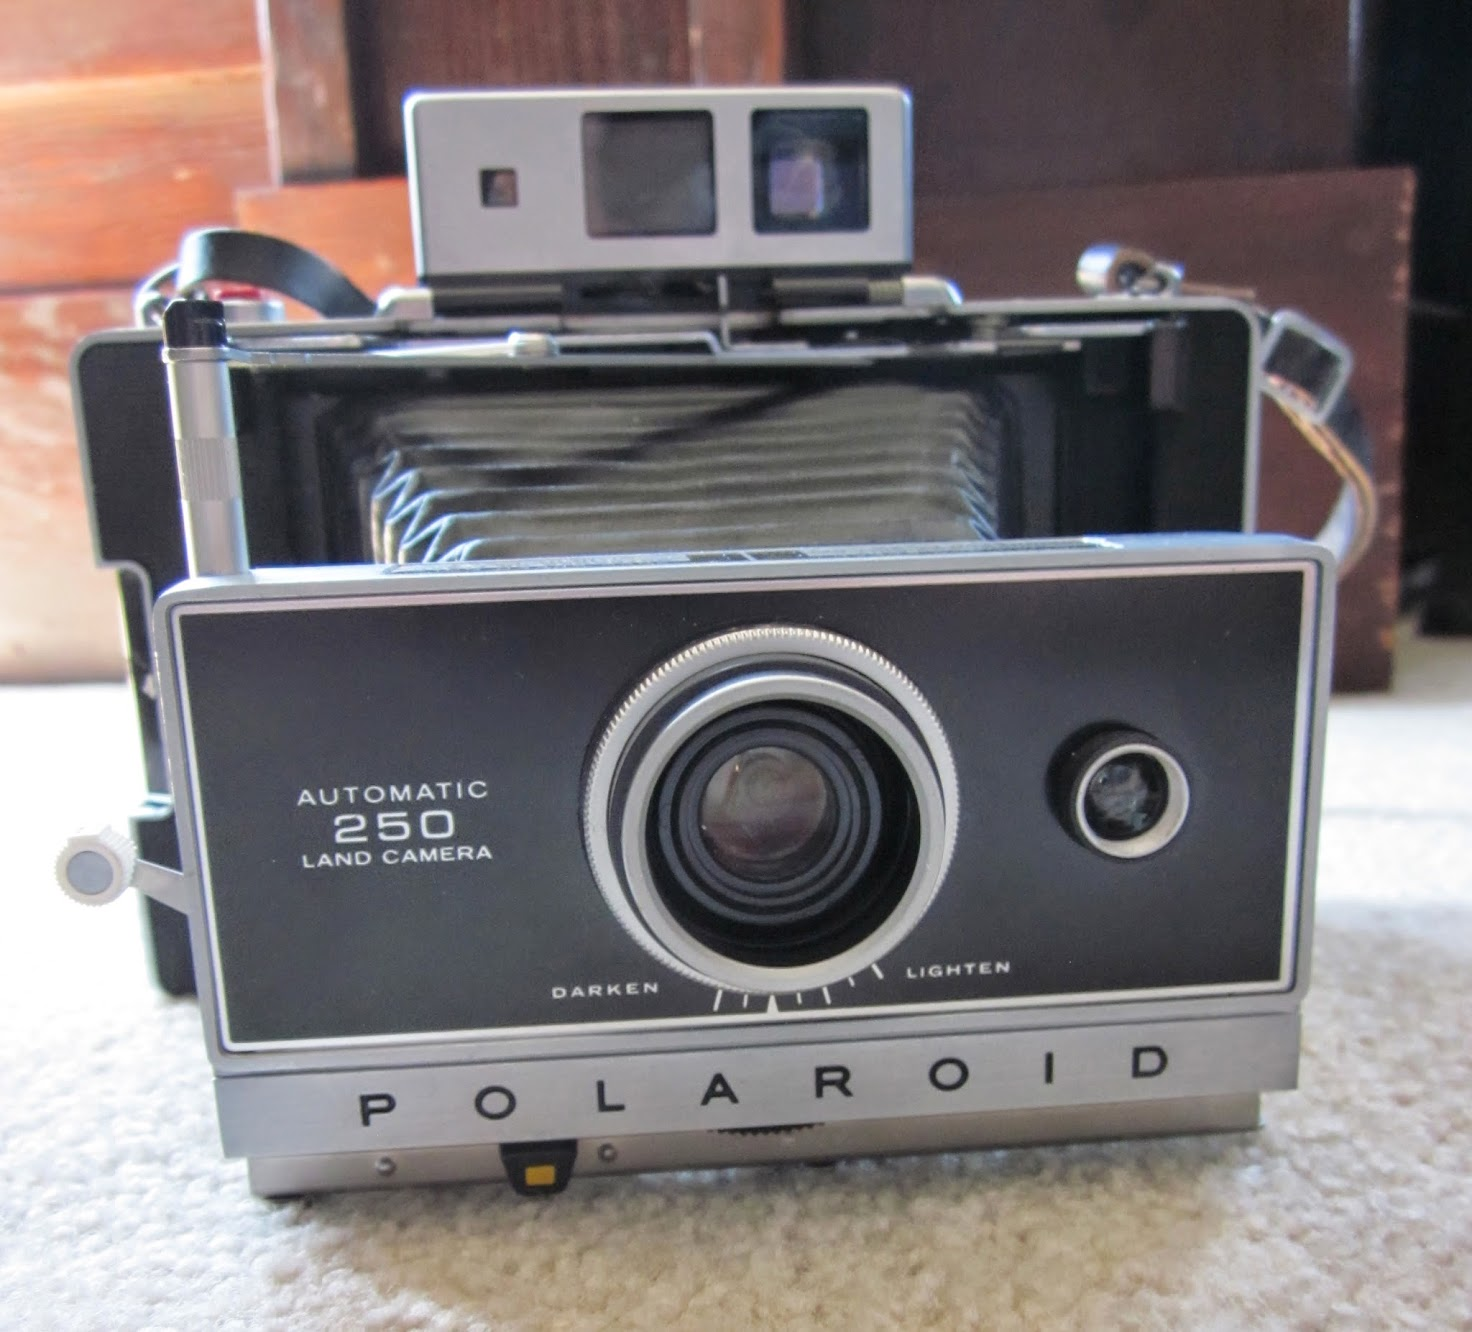 Polaroid Land Model 250 camera